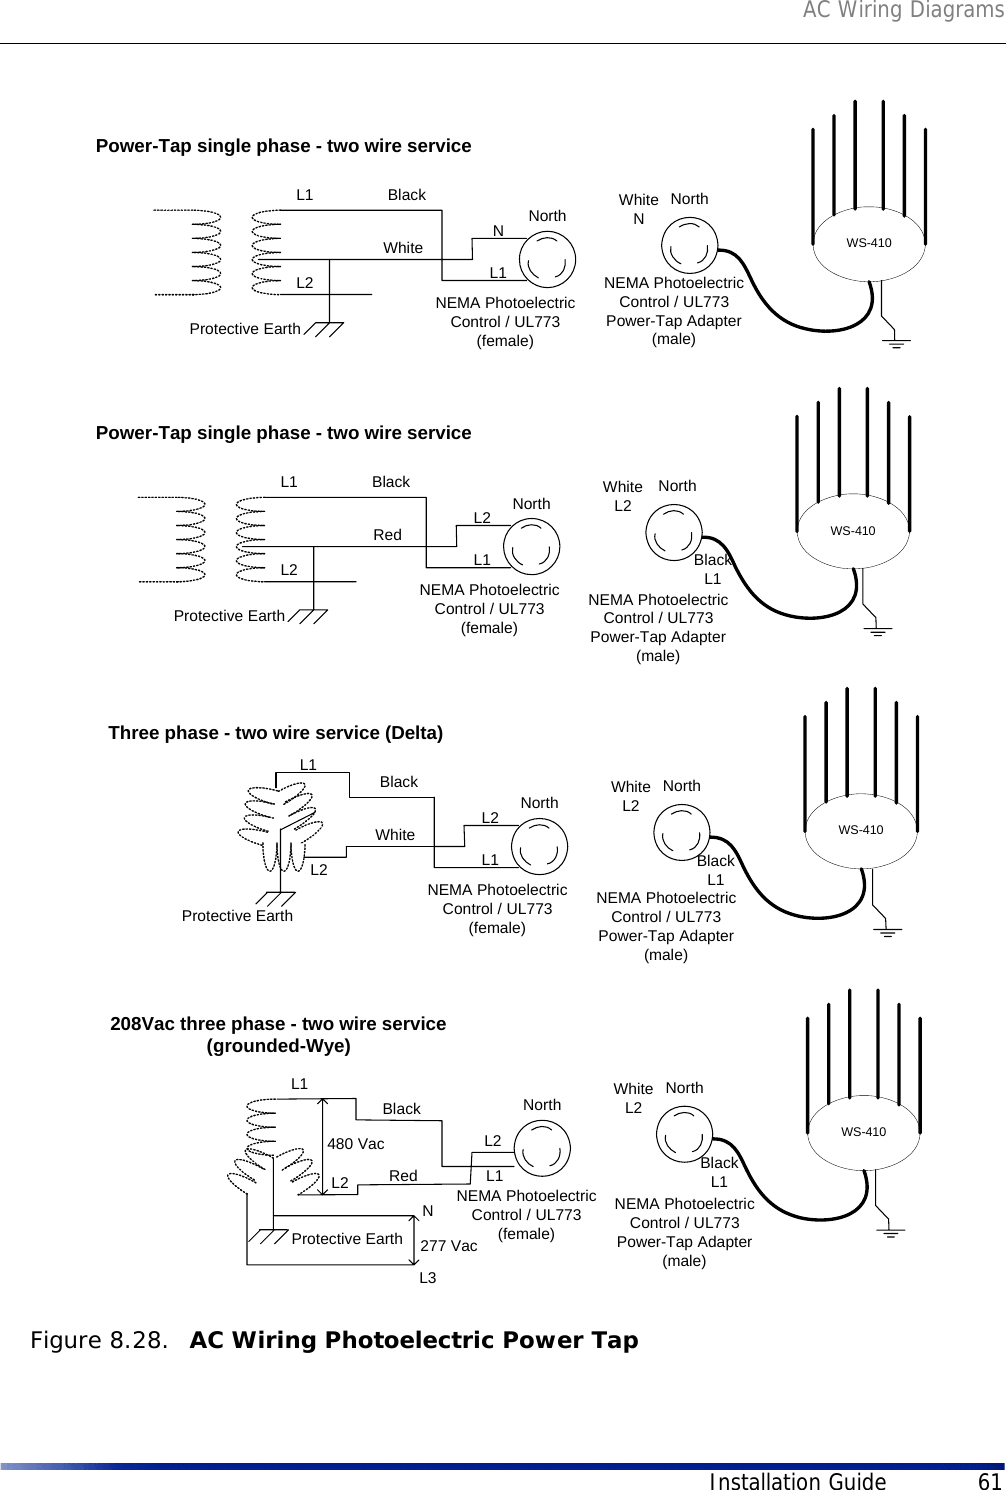 hight resolution of ac wiring diagramsinstallation guide 61figure 8 28 ac wiring photoelectric power tapl1l2protective earthblackwhite ws 410north